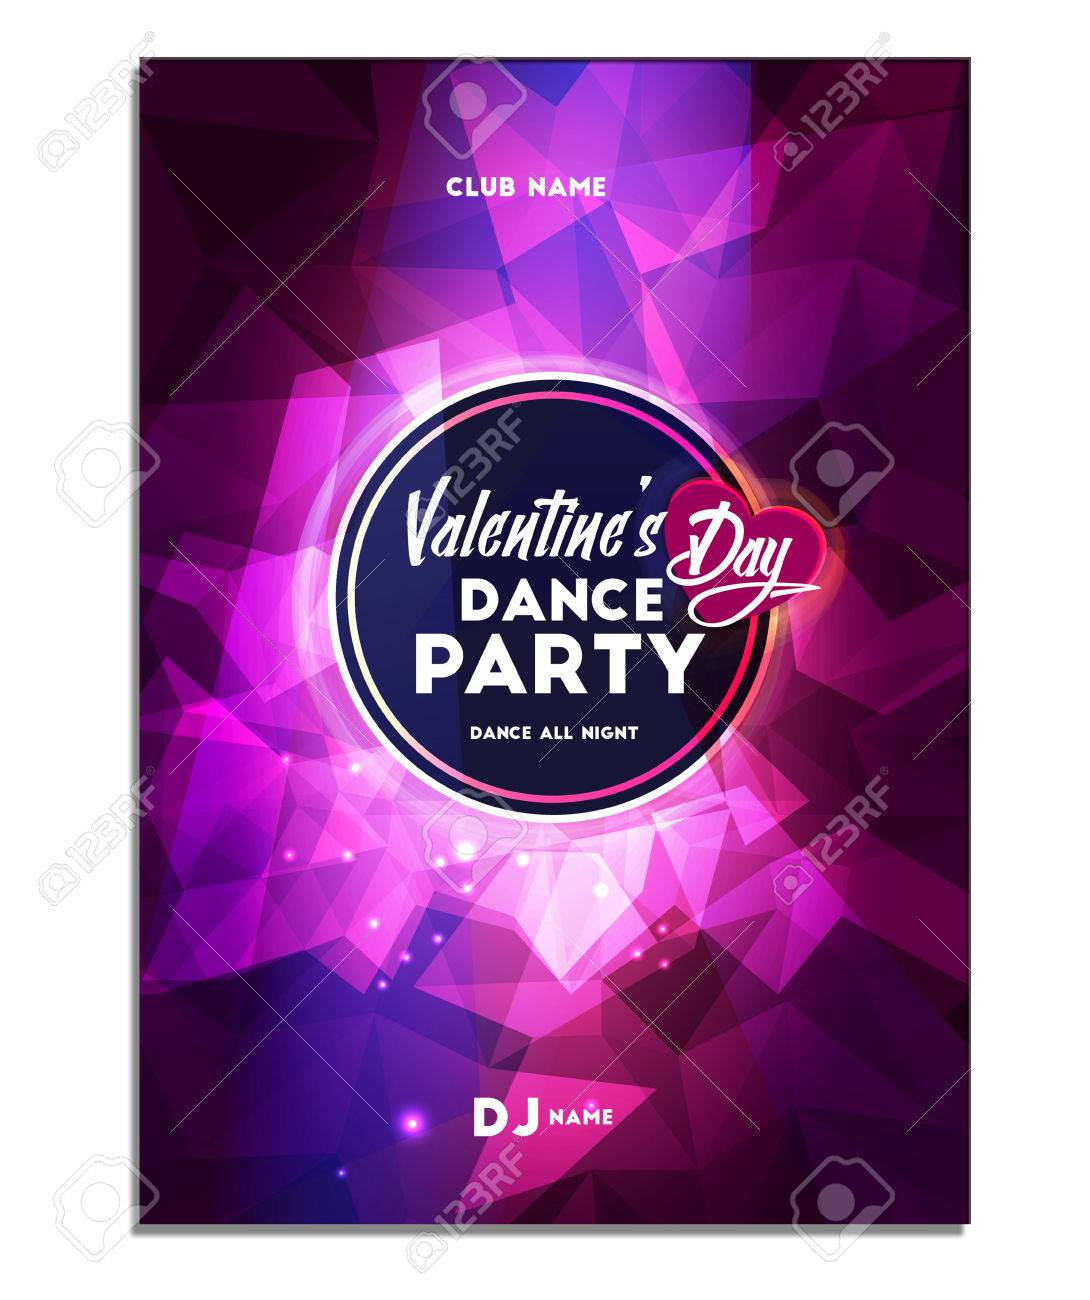 Happy Valentine S Day Dance Party Poster Flyer Royalty Free